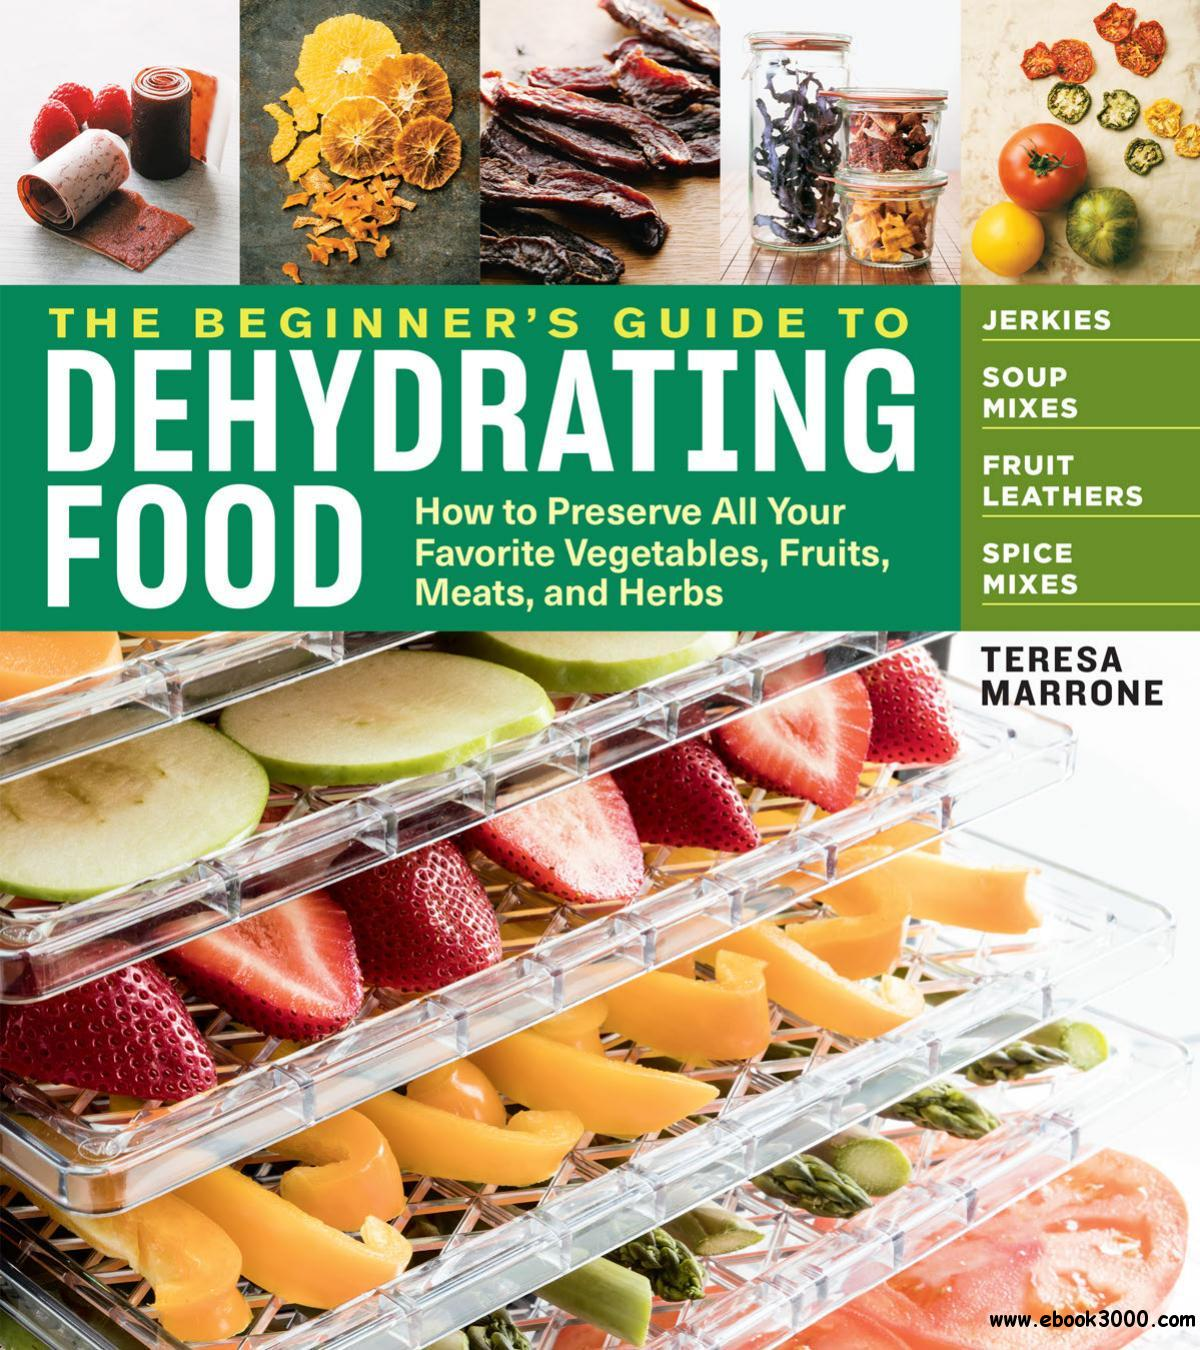 The Beginner's Guide to Dehydrating Food: How to Preserve All Your Favorite Vegetables, Fruits, Meats, and Herbs, 2nd Edition